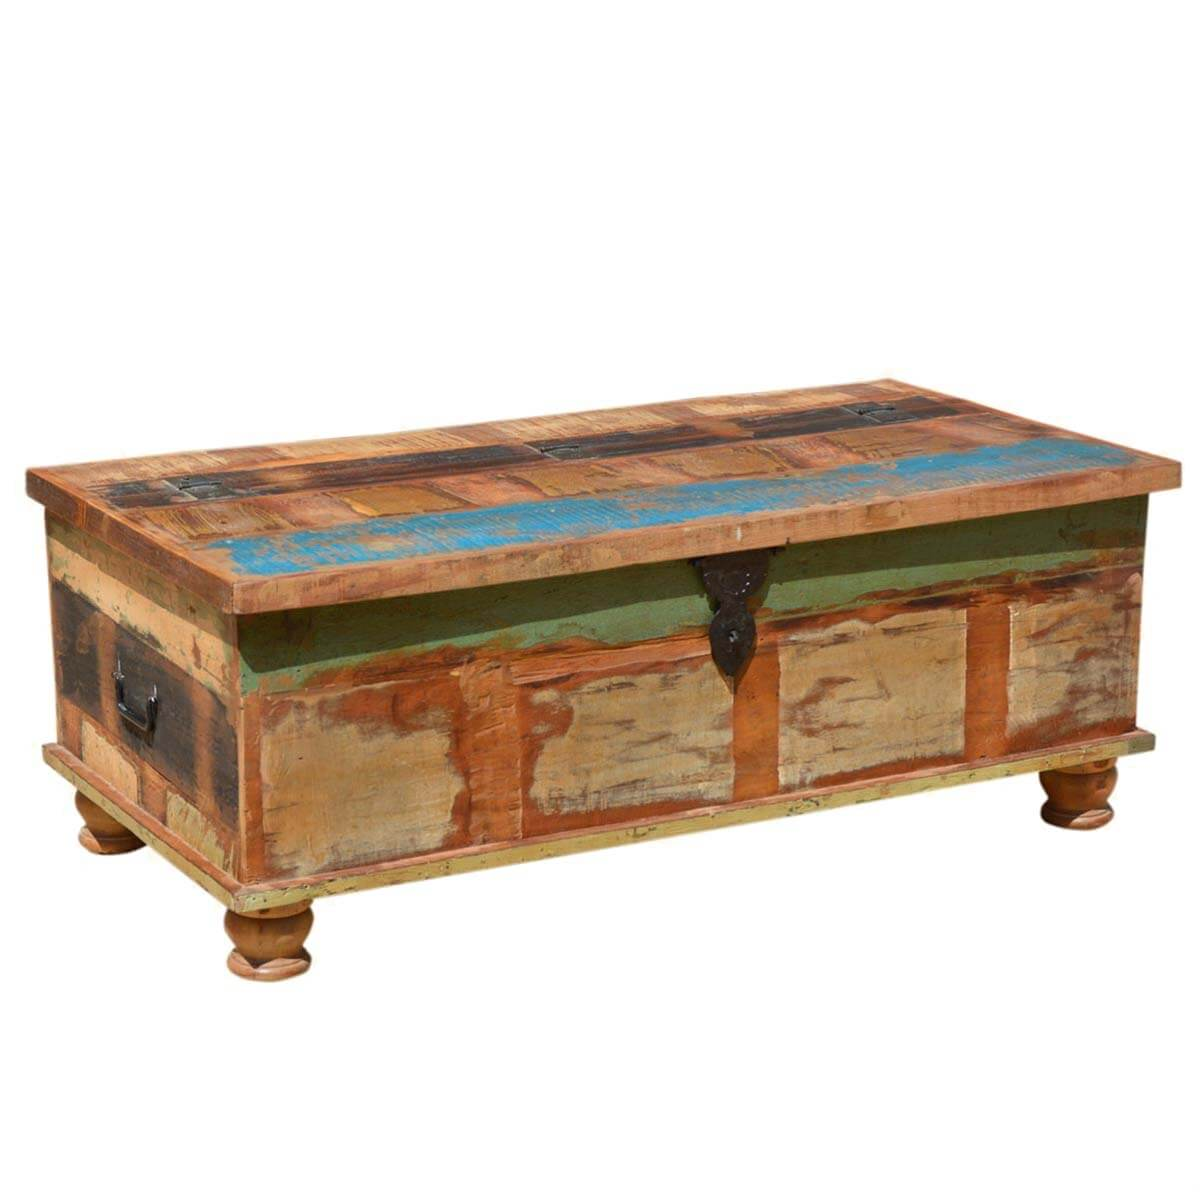 Grinnell rustic reclaimed wood coffee table storage trunk for Reclaimed coffee table